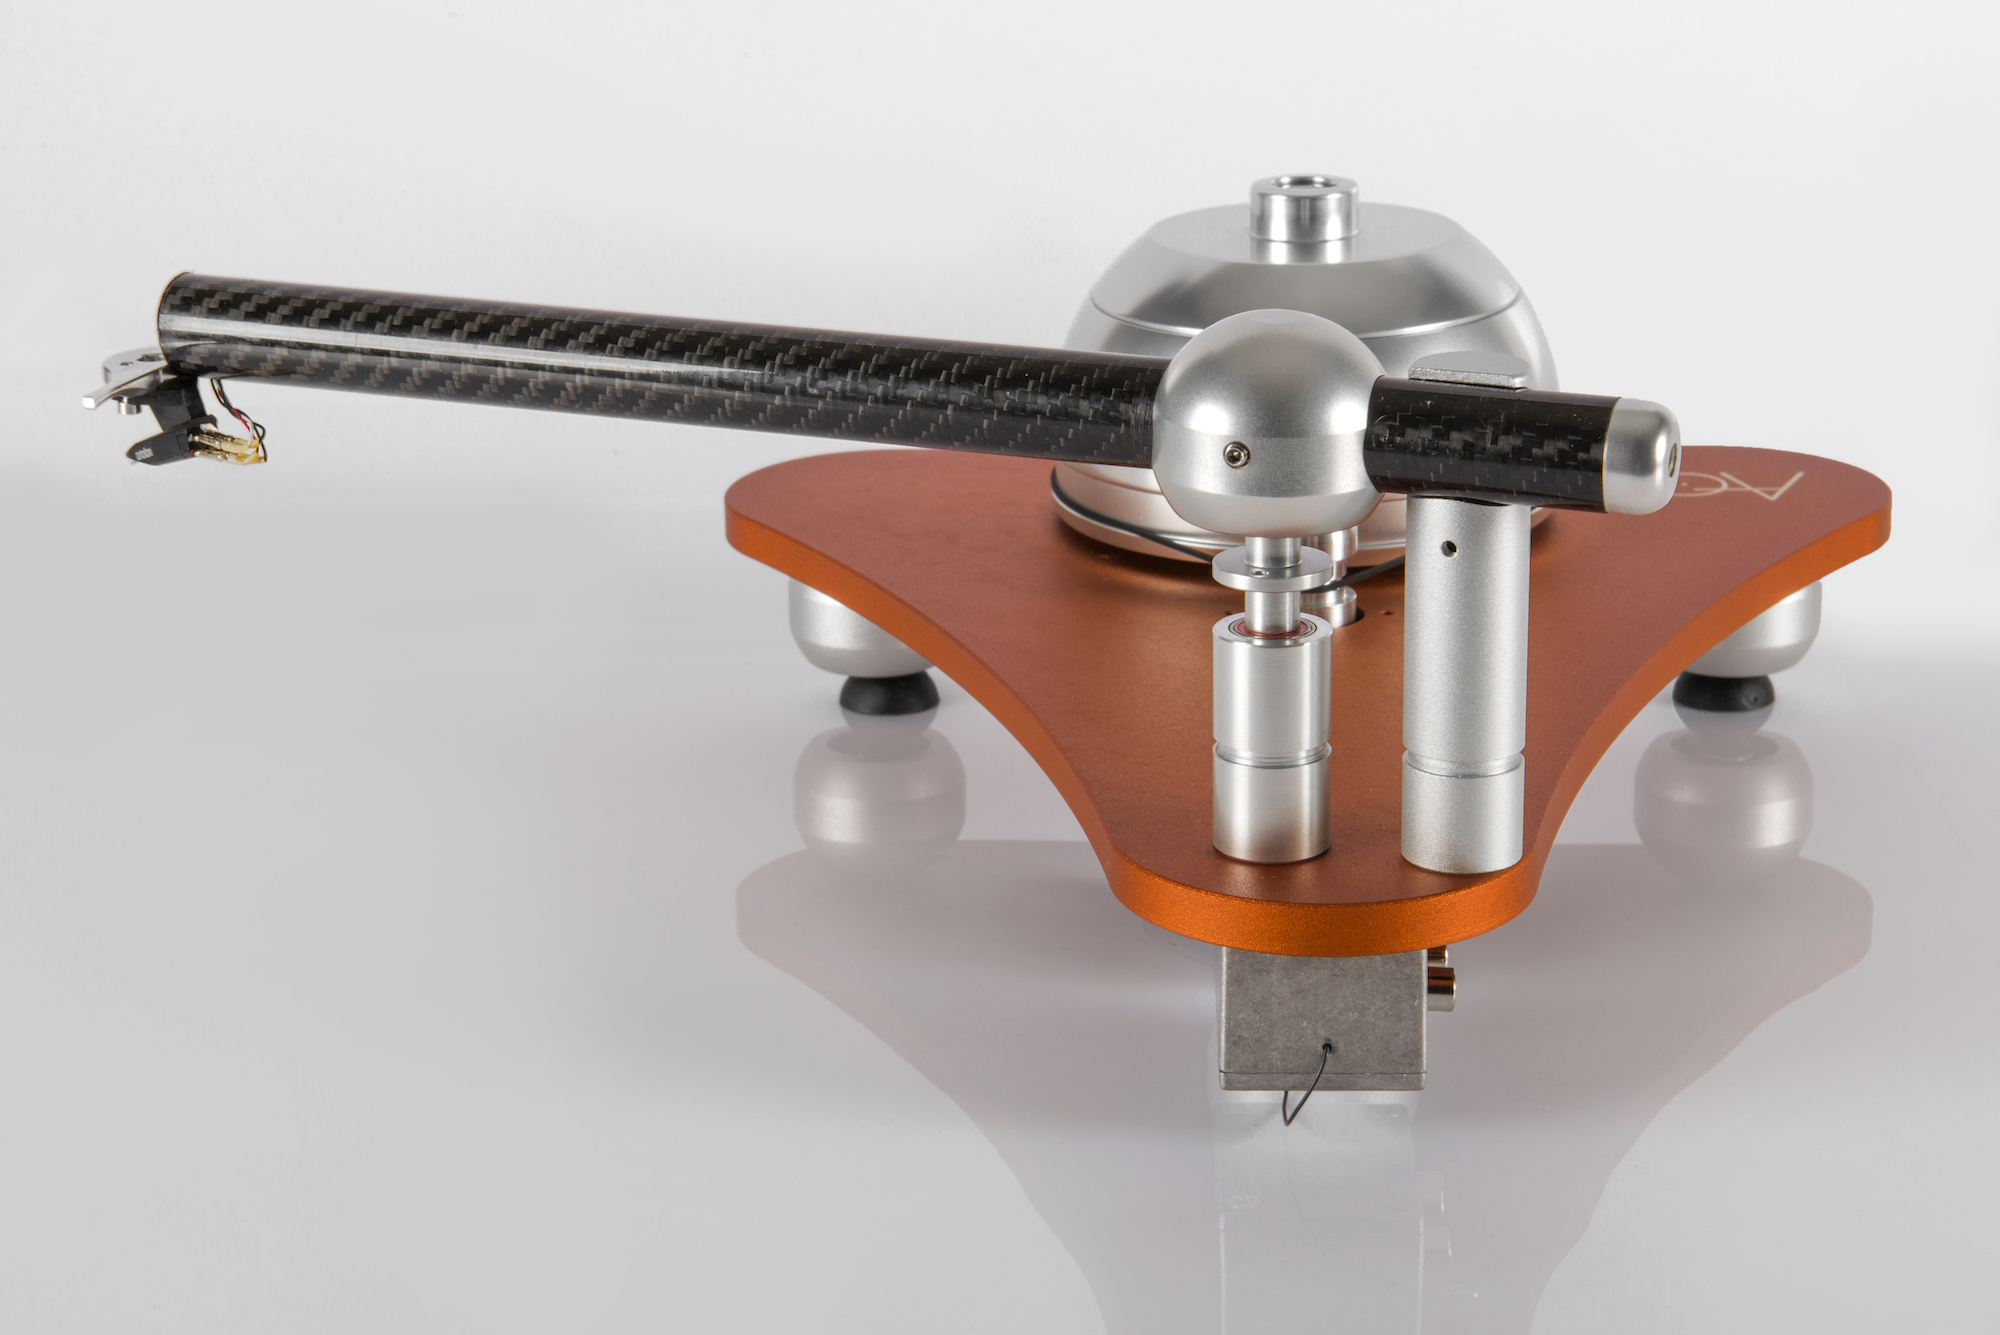 Atmo Sfera Platterless Turntable delivers exquisite sound quality